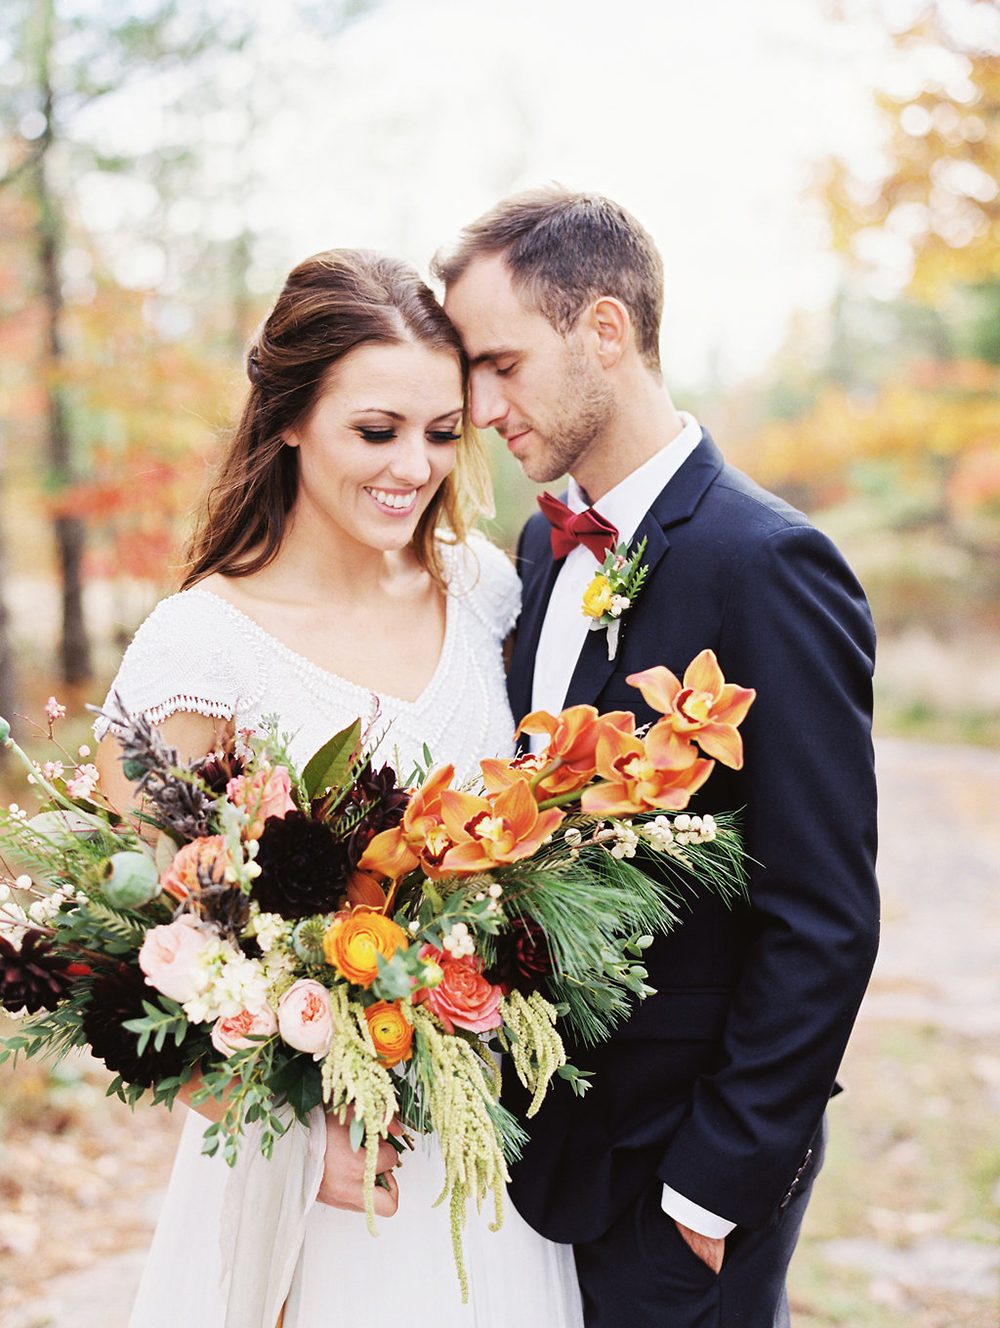 orange wedding bouquets - photo by Evelyn Barkey Photography http://ruffledblog.com/romantic-elopement-inspiration-with-rich-colors